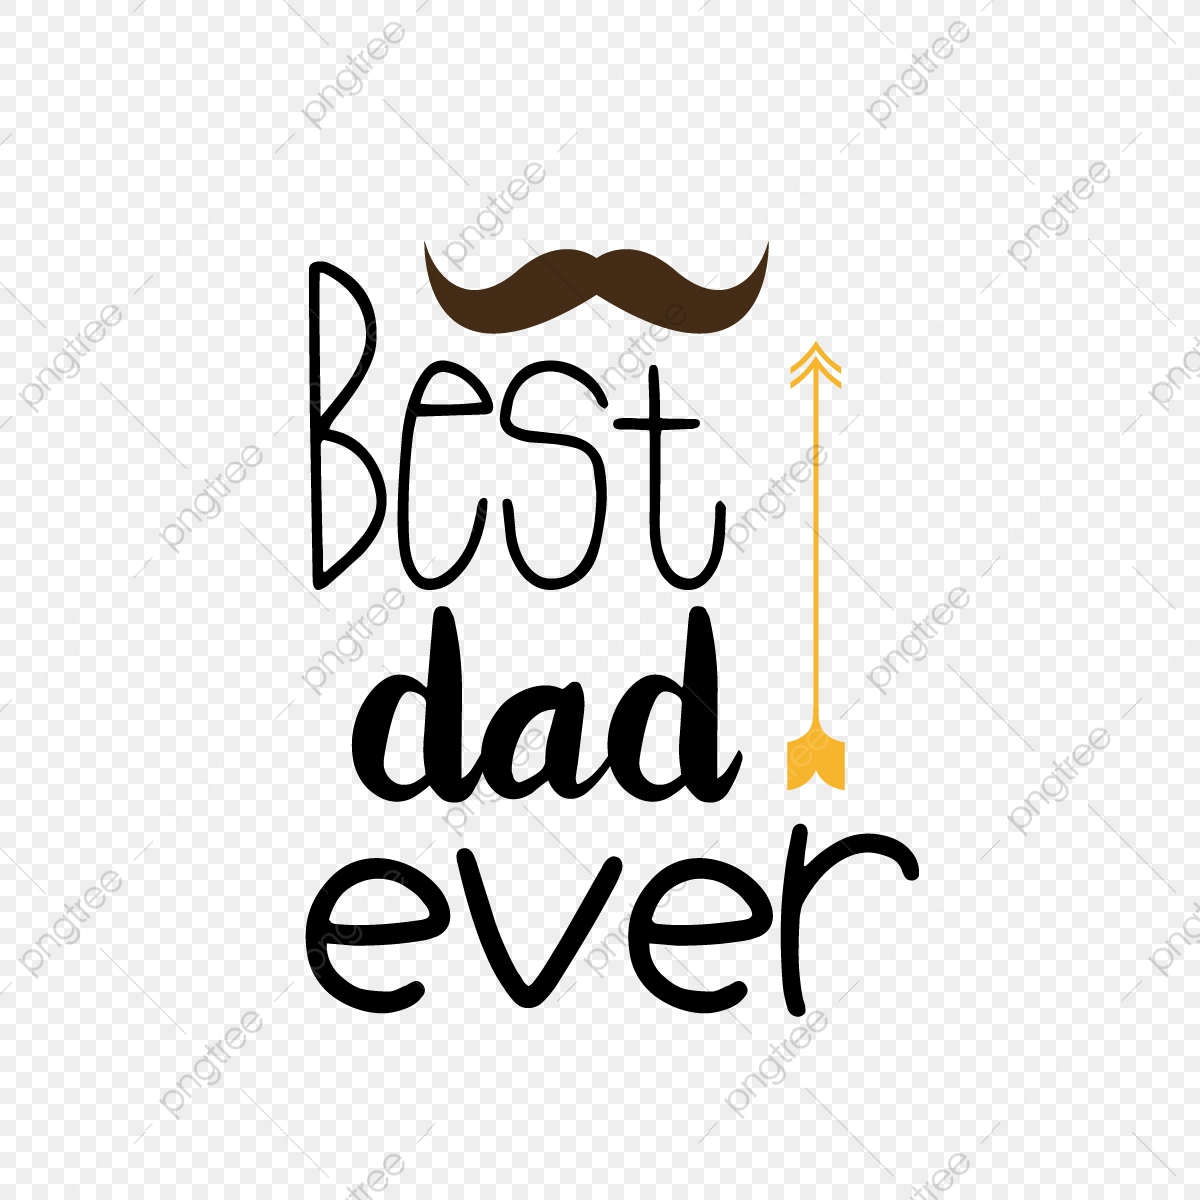 Simple And Very Good Dad Svg Art Word Sentence Font Effect Eps For Free Download